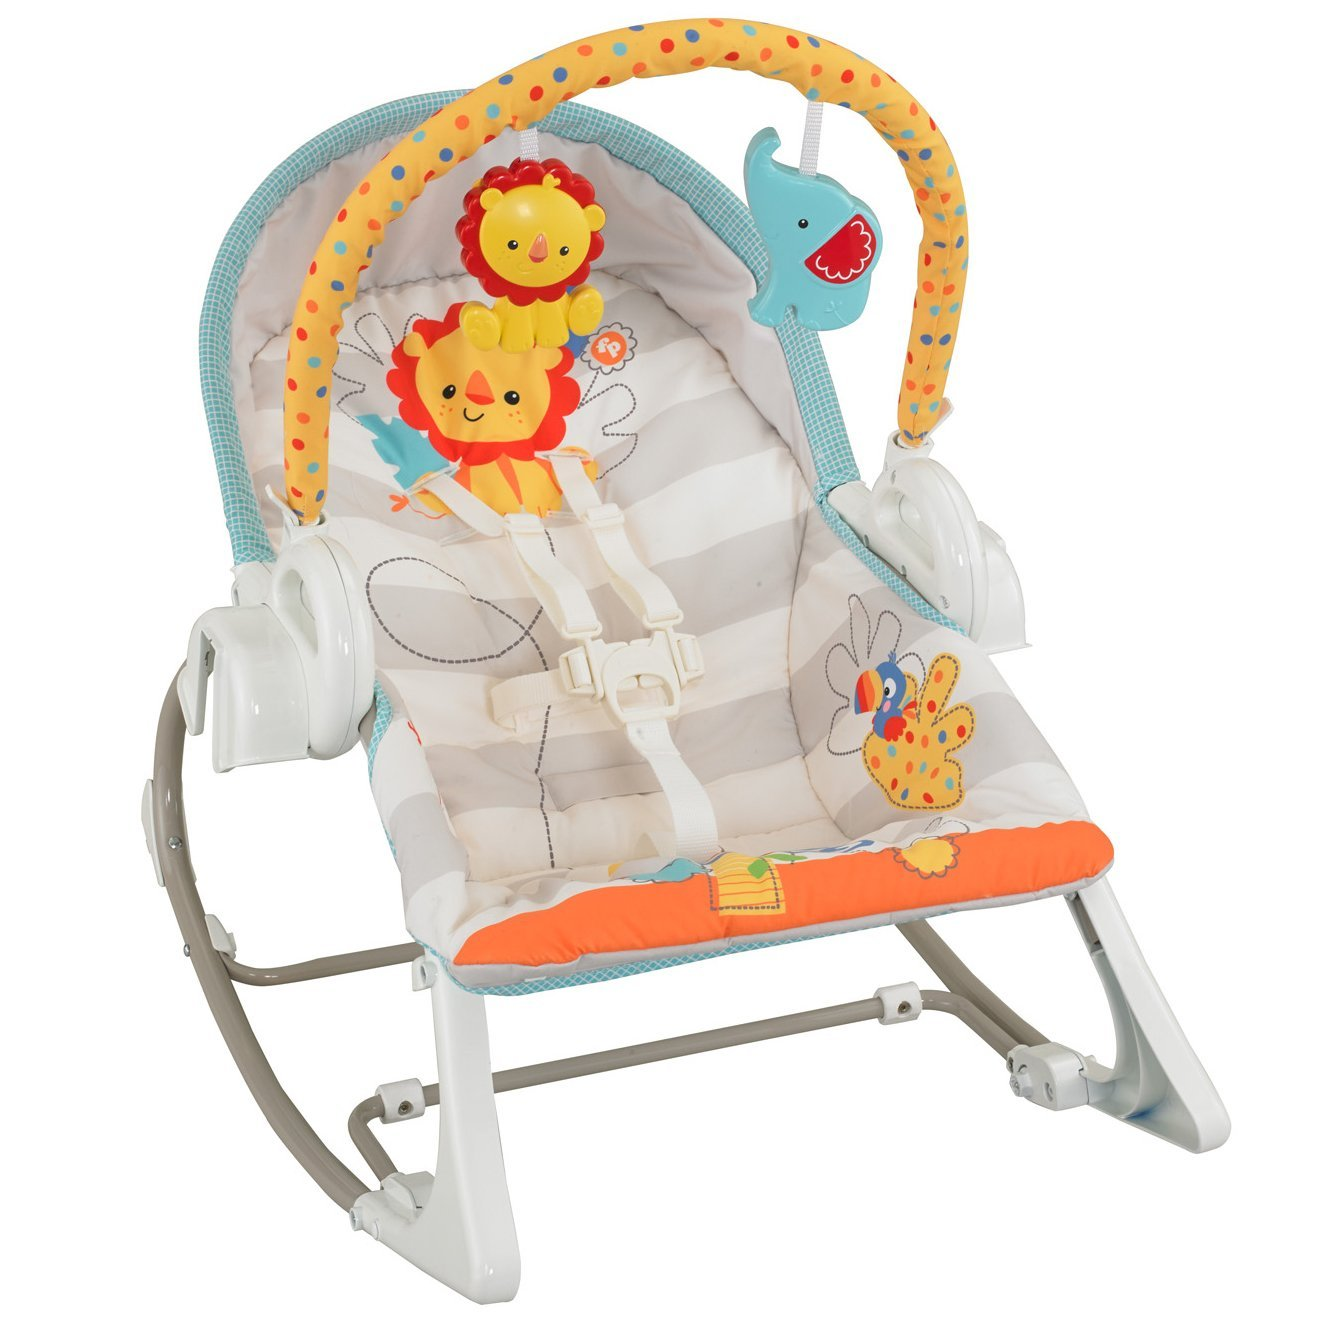 New fisher price 3 in 1 swing n rocker musical baby swing seat rocking chair ebay - Chaise fisher price musical ...